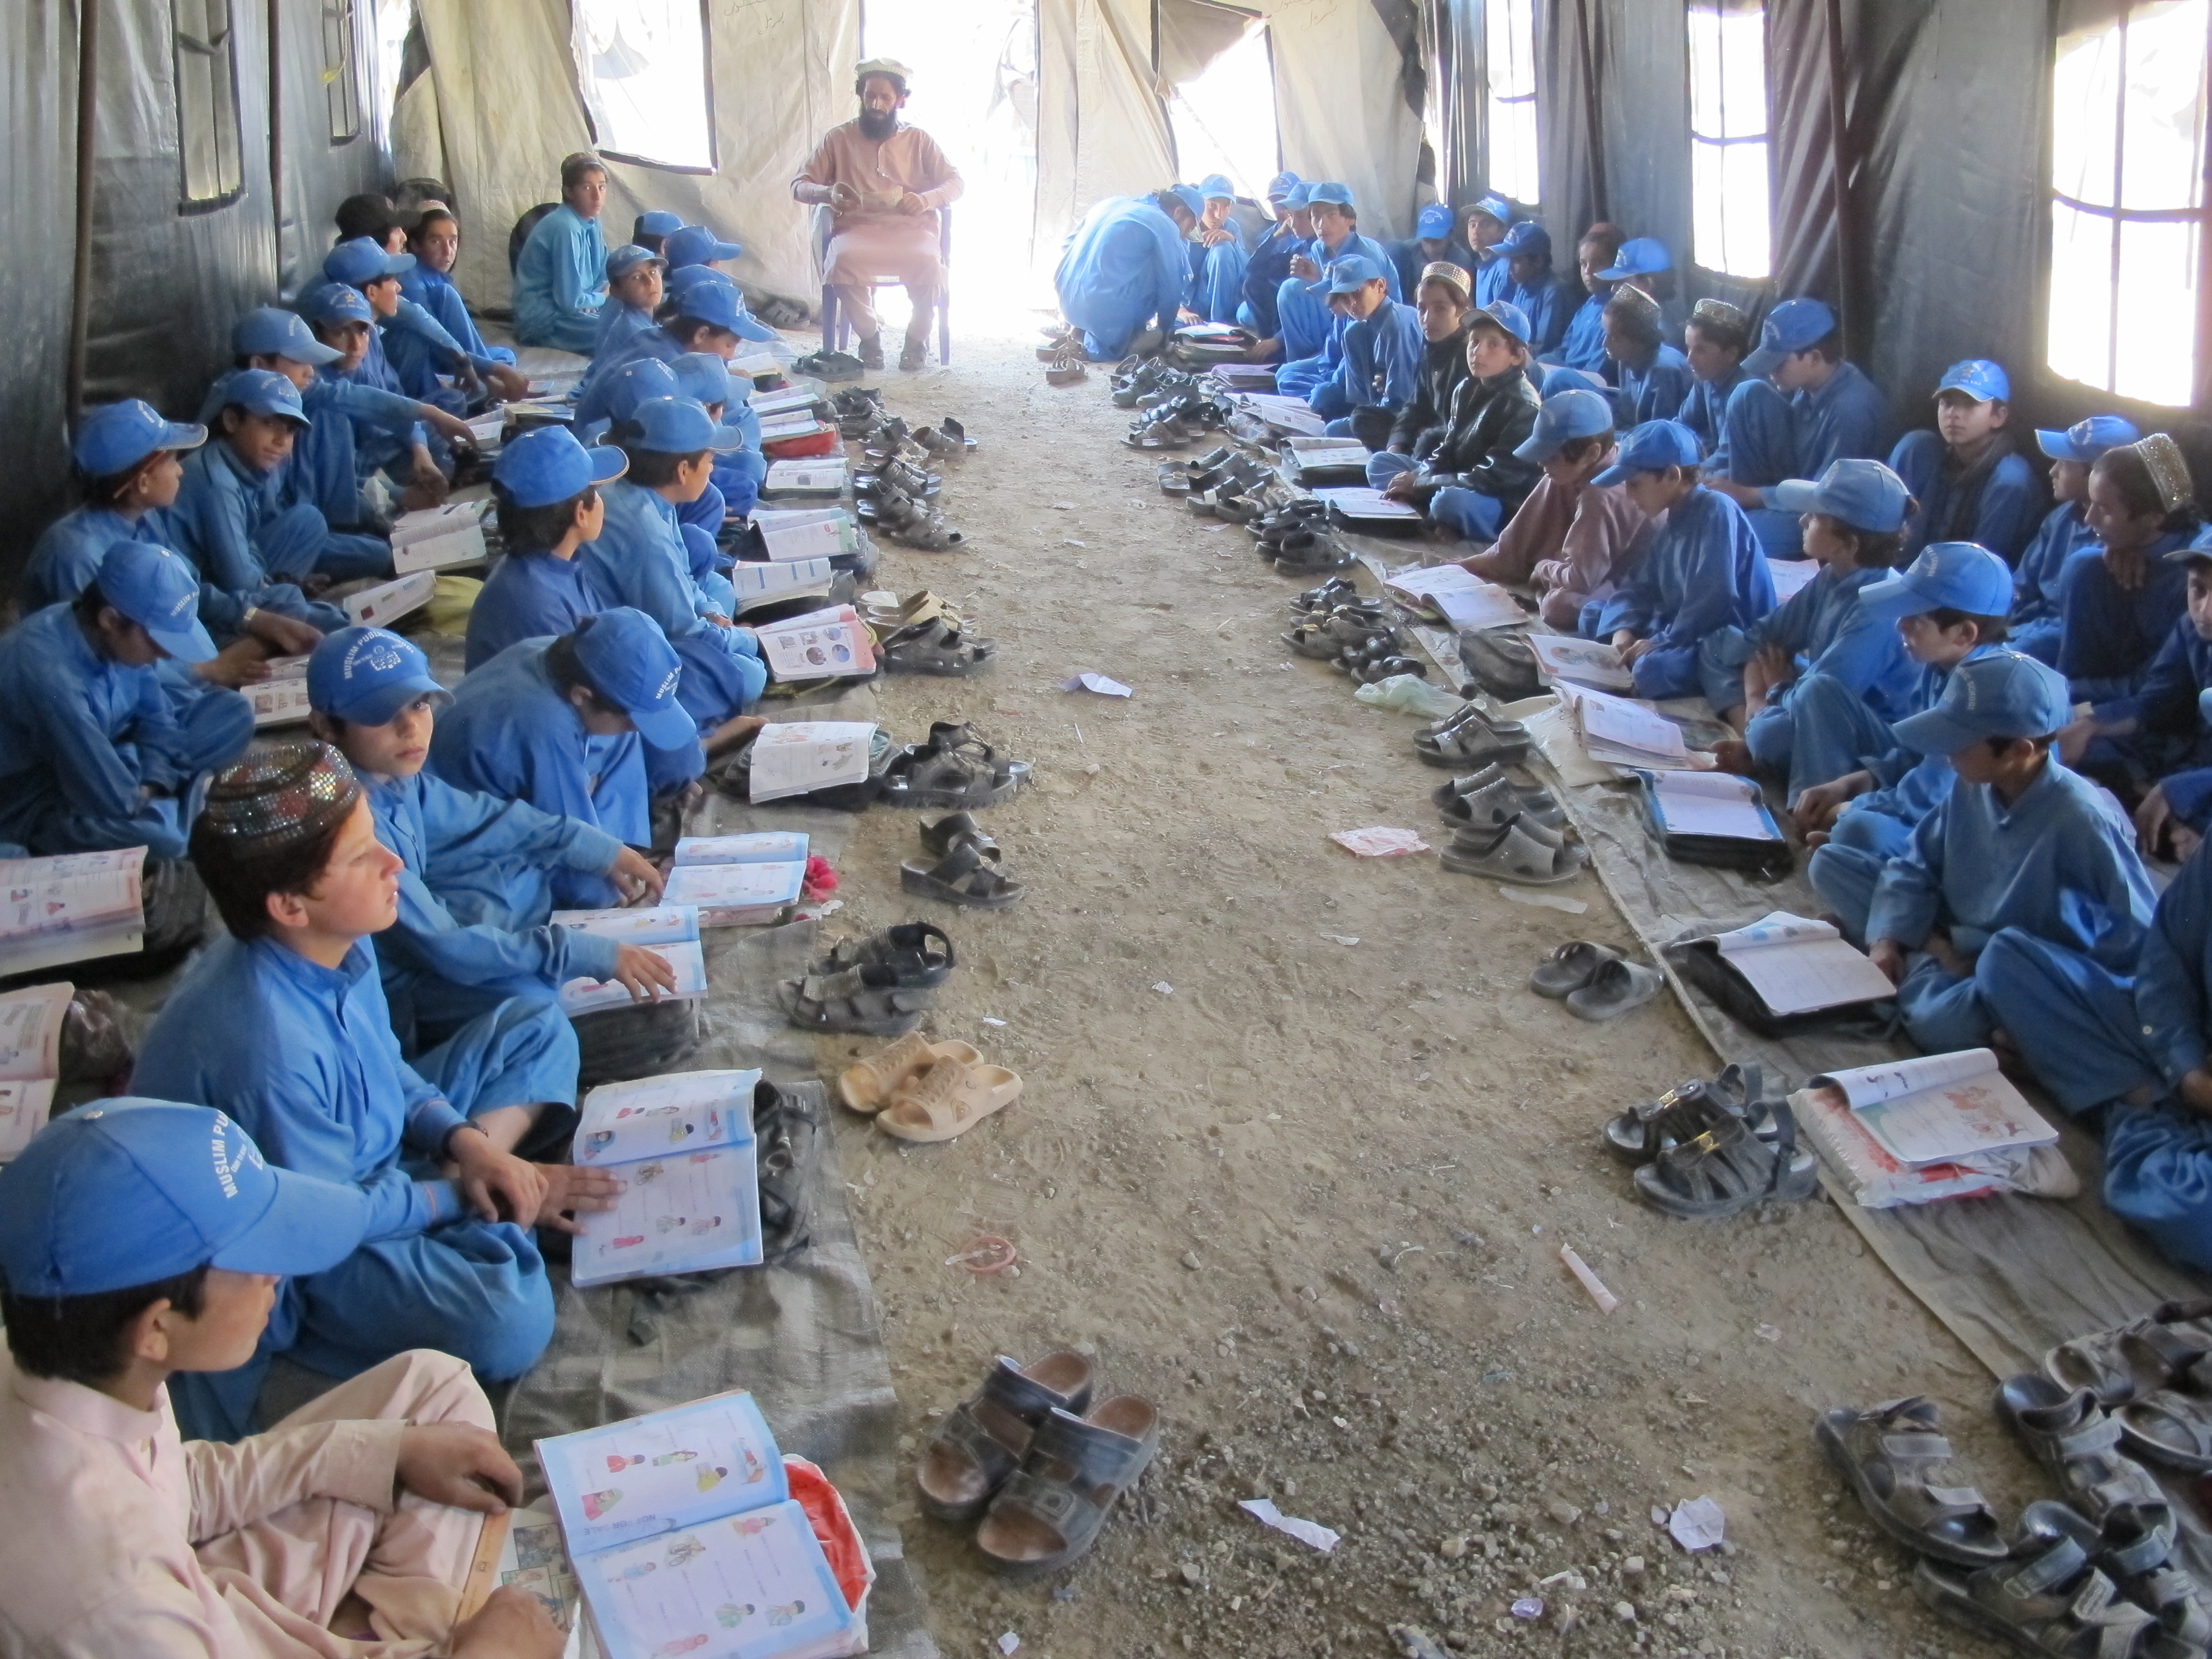 Quandary of Tented School in a Refugee Camp in Paktika